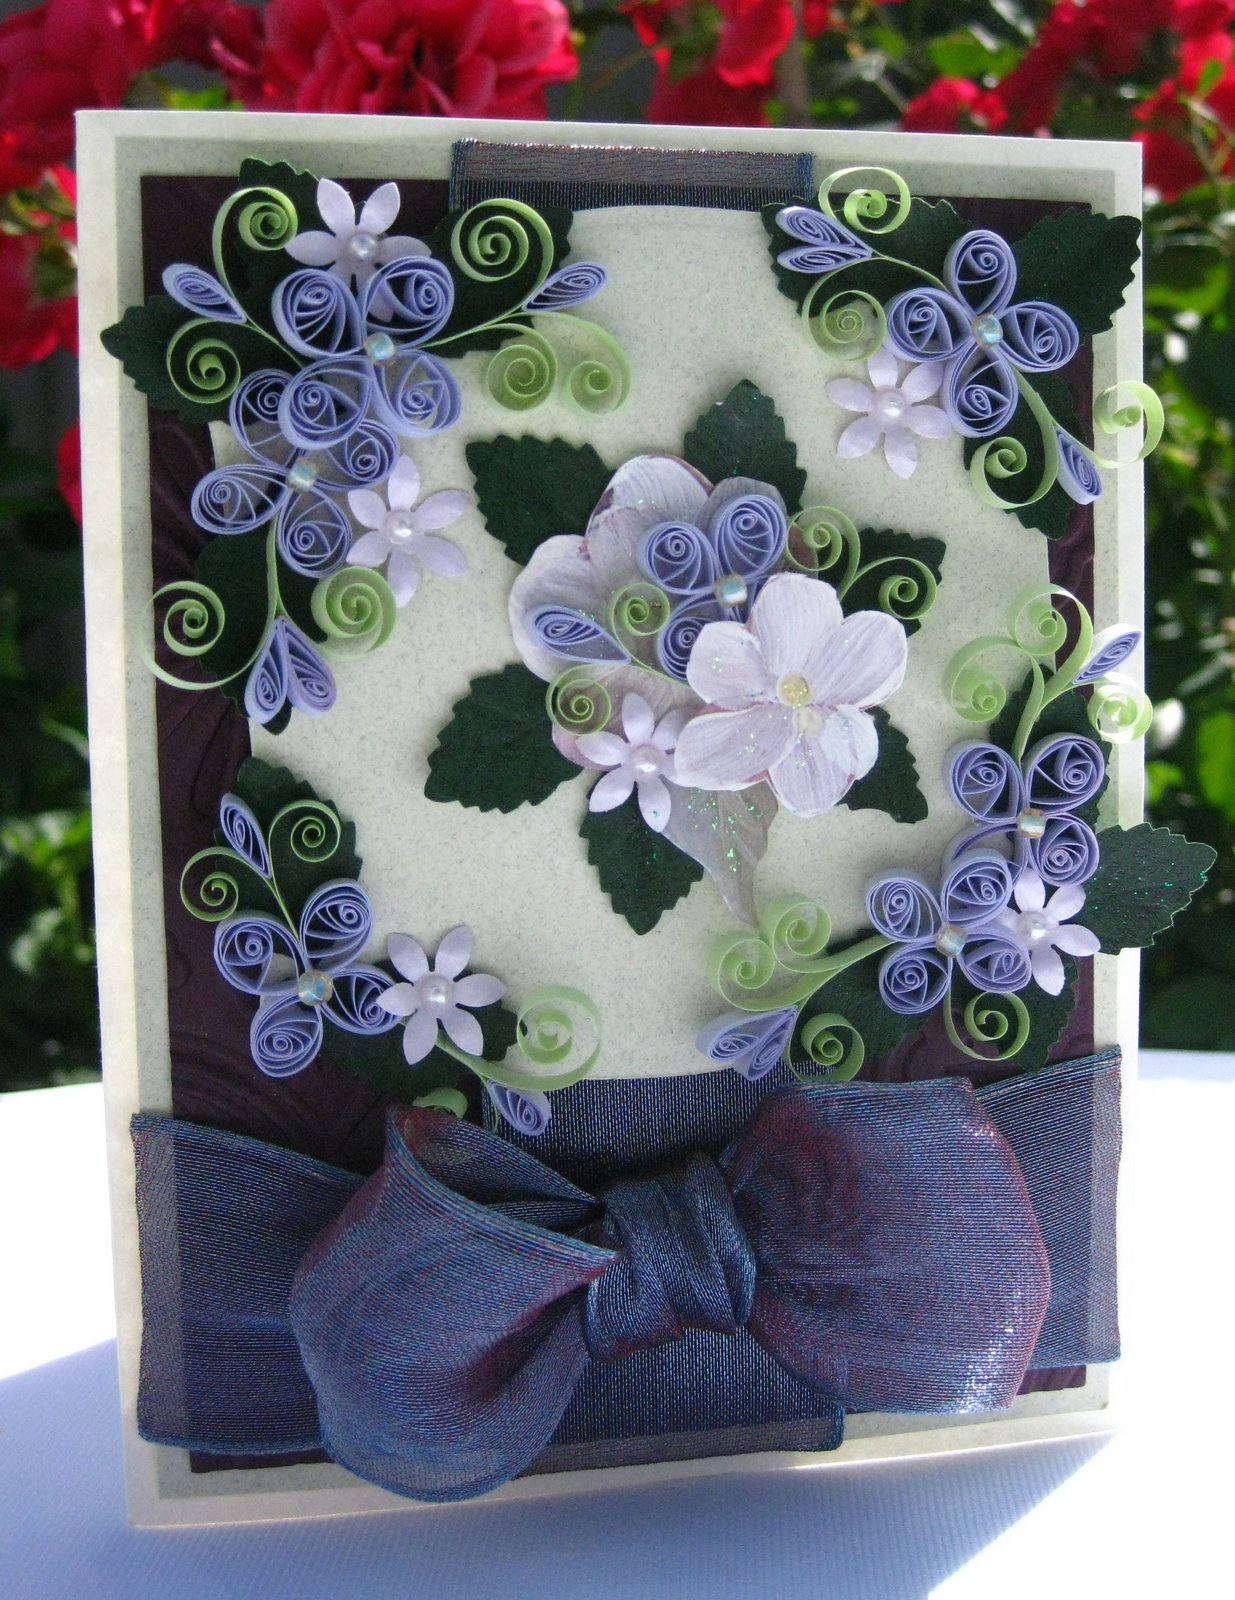 Wedding Quilling - Quilled Creations Quilling Gallery